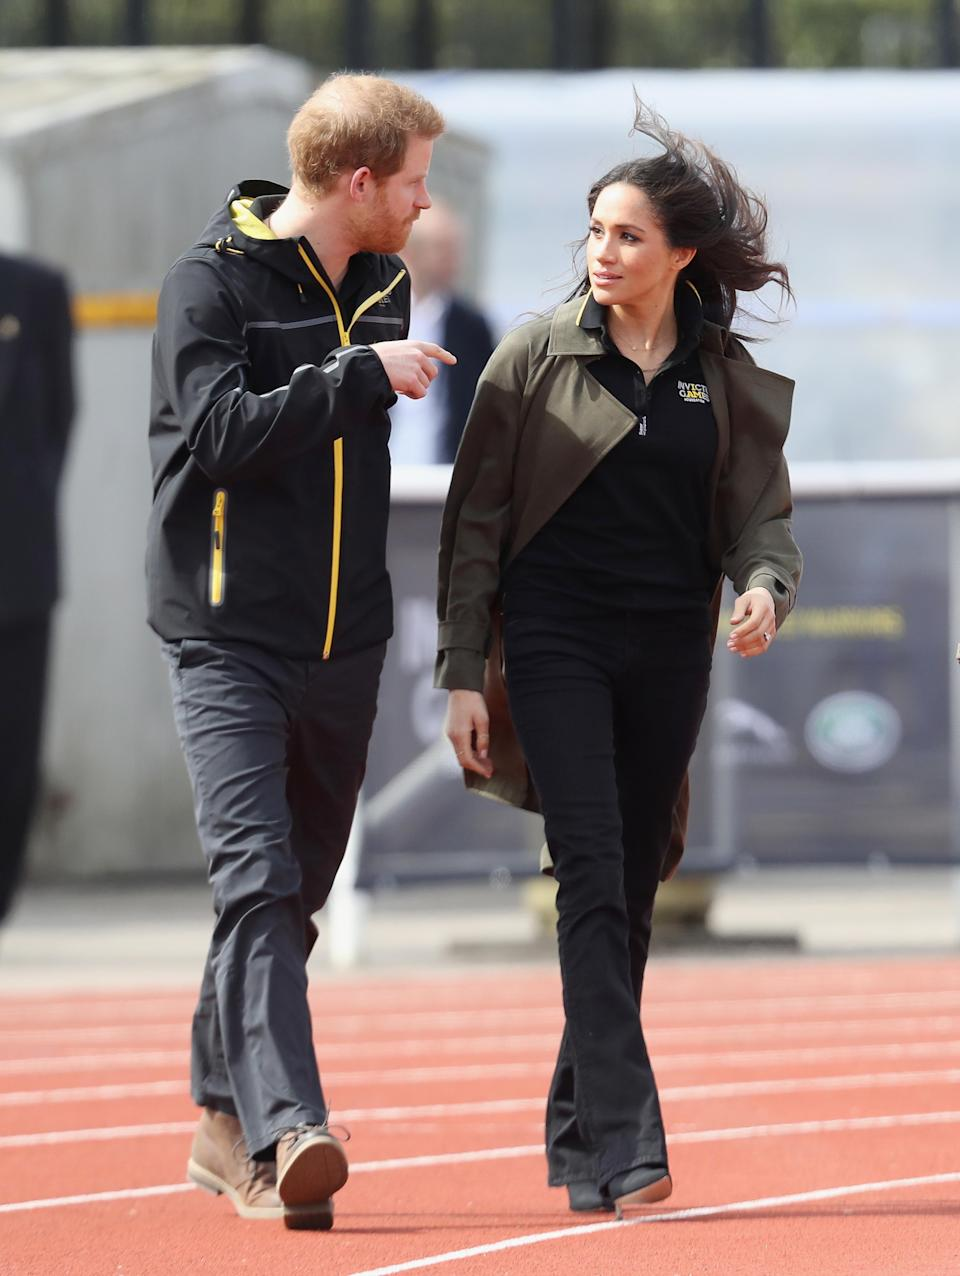 """<p>On Friday, the couple dressed down to attend the Invictus Games tryouts in Bath. For the event, 36-year-old Markle wore a Invictus Games polo shirt paired with black bootcut jeans by Mother Denim. She kept warm in a <a rel=""""nofollow noopener"""" href=""""https://www.aritzia.com/en/product/bascom-trench-coat/65544.html?dwvar_65544_color=5091"""" target=""""_blank"""" data-ylk=""""slk:chic $195 trench coat"""" class=""""link rapid-noclick-resp"""">chic $195 trench coat</a> by one of her favourite (Canadian!) brands, Babaton. </p>"""